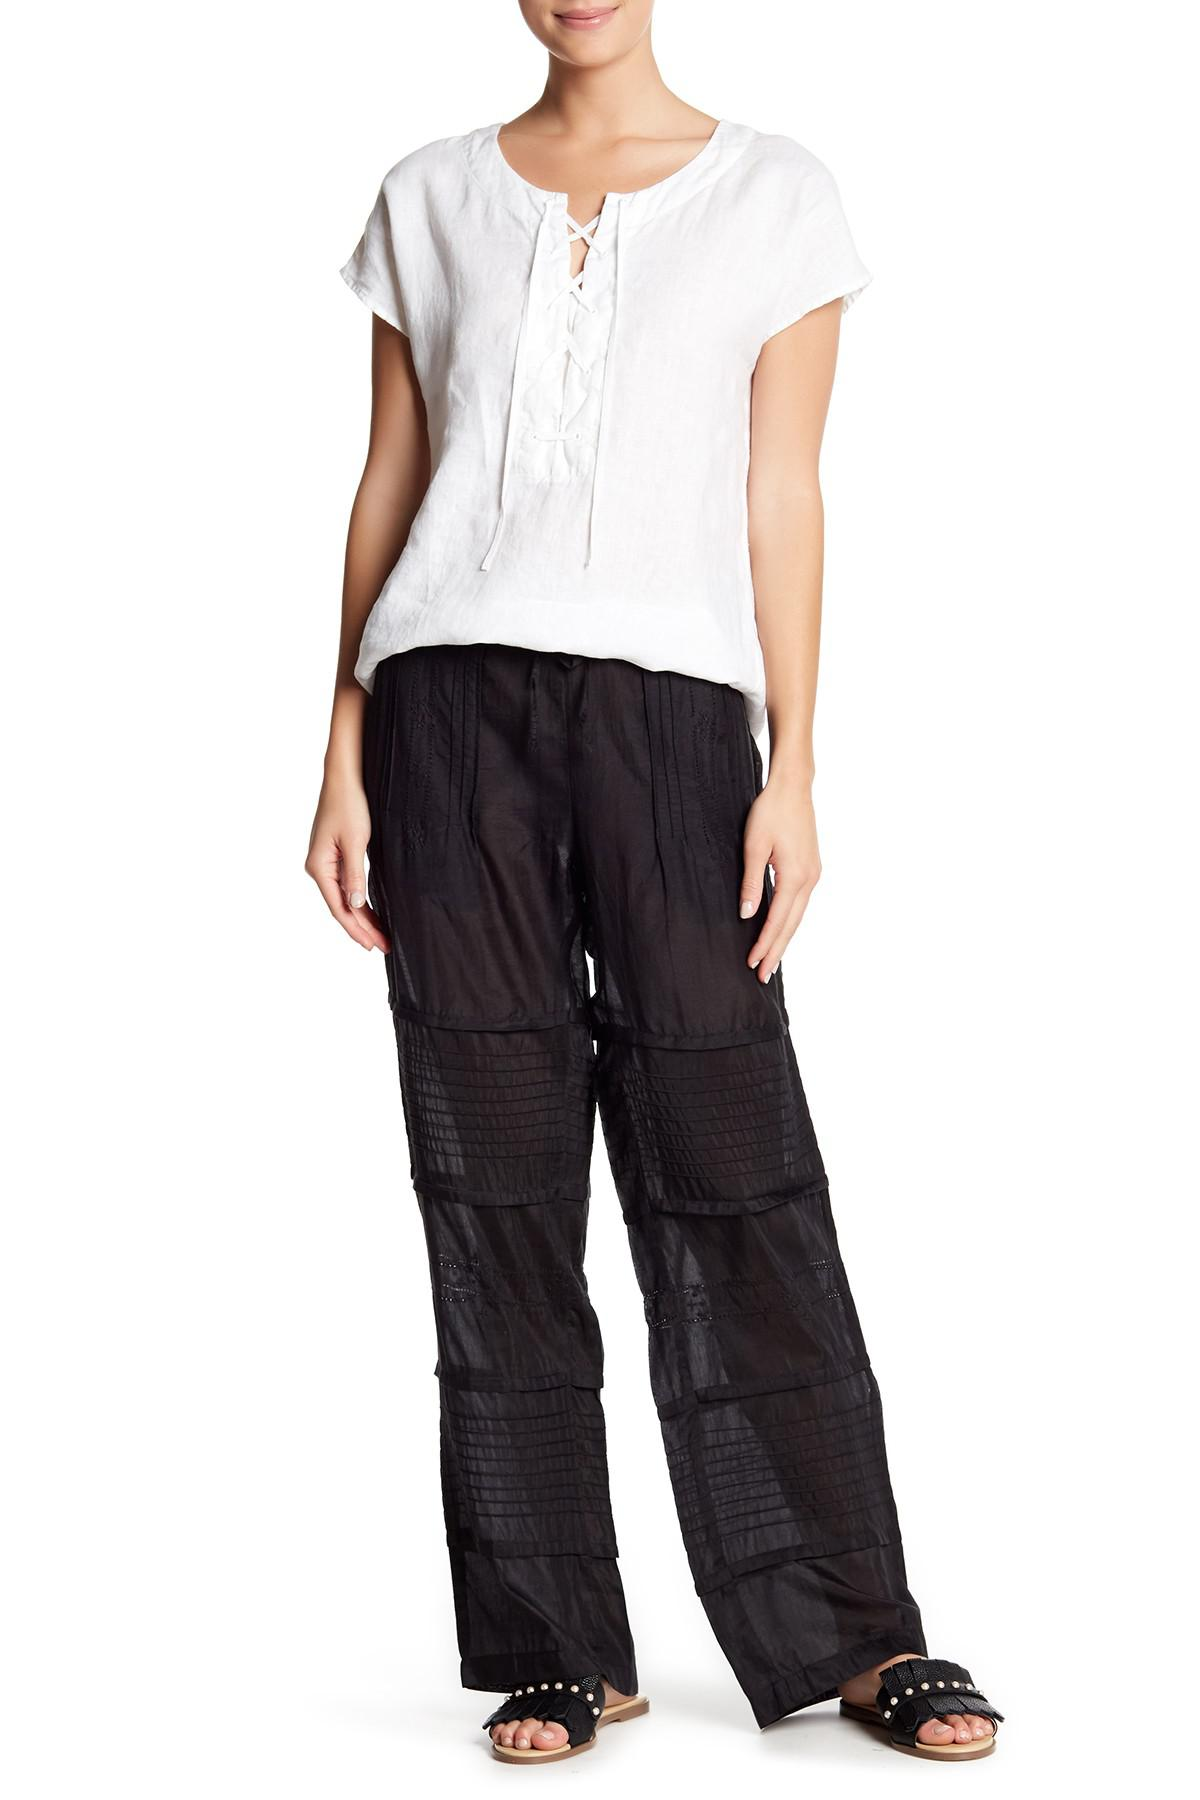 49929ed3781 Lyst - Johnny Was Pleated Pants in Black